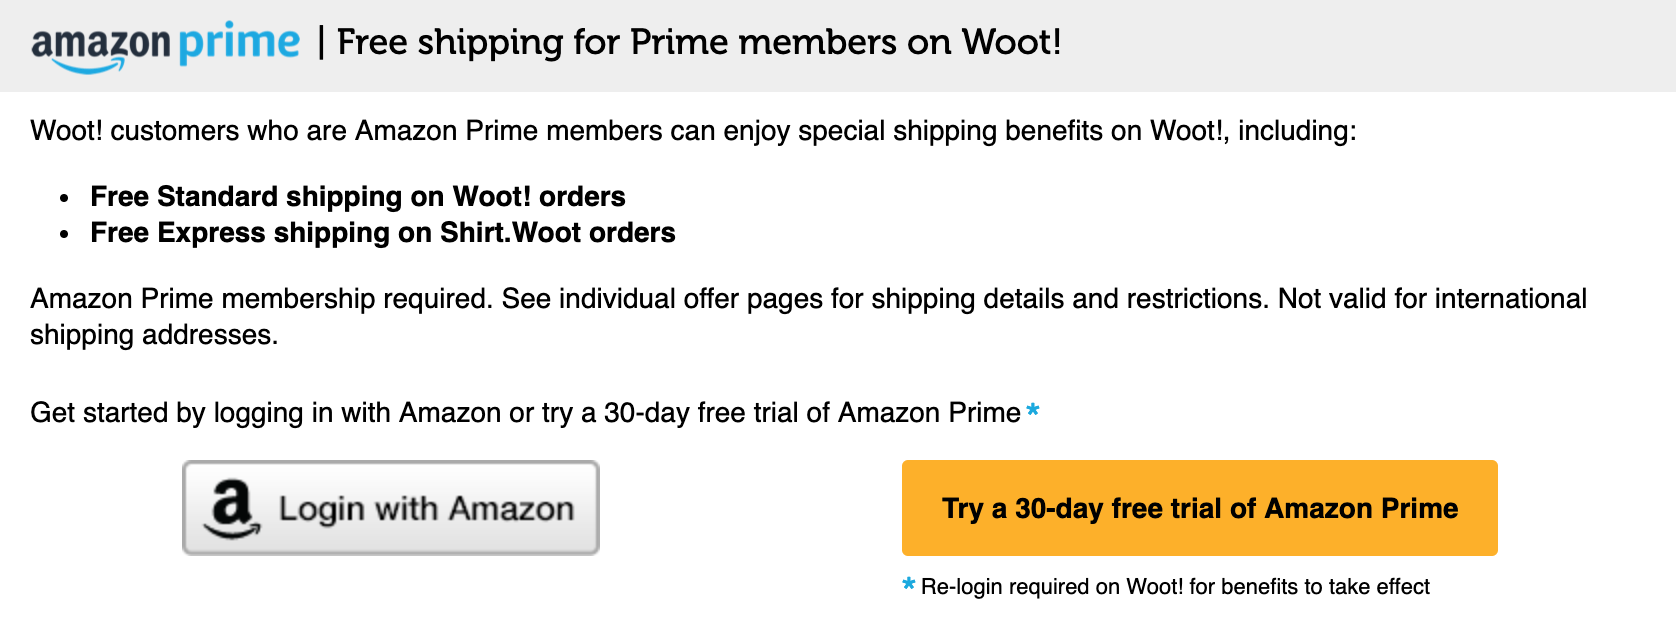 Amazon prime free shipping on Woot purchases